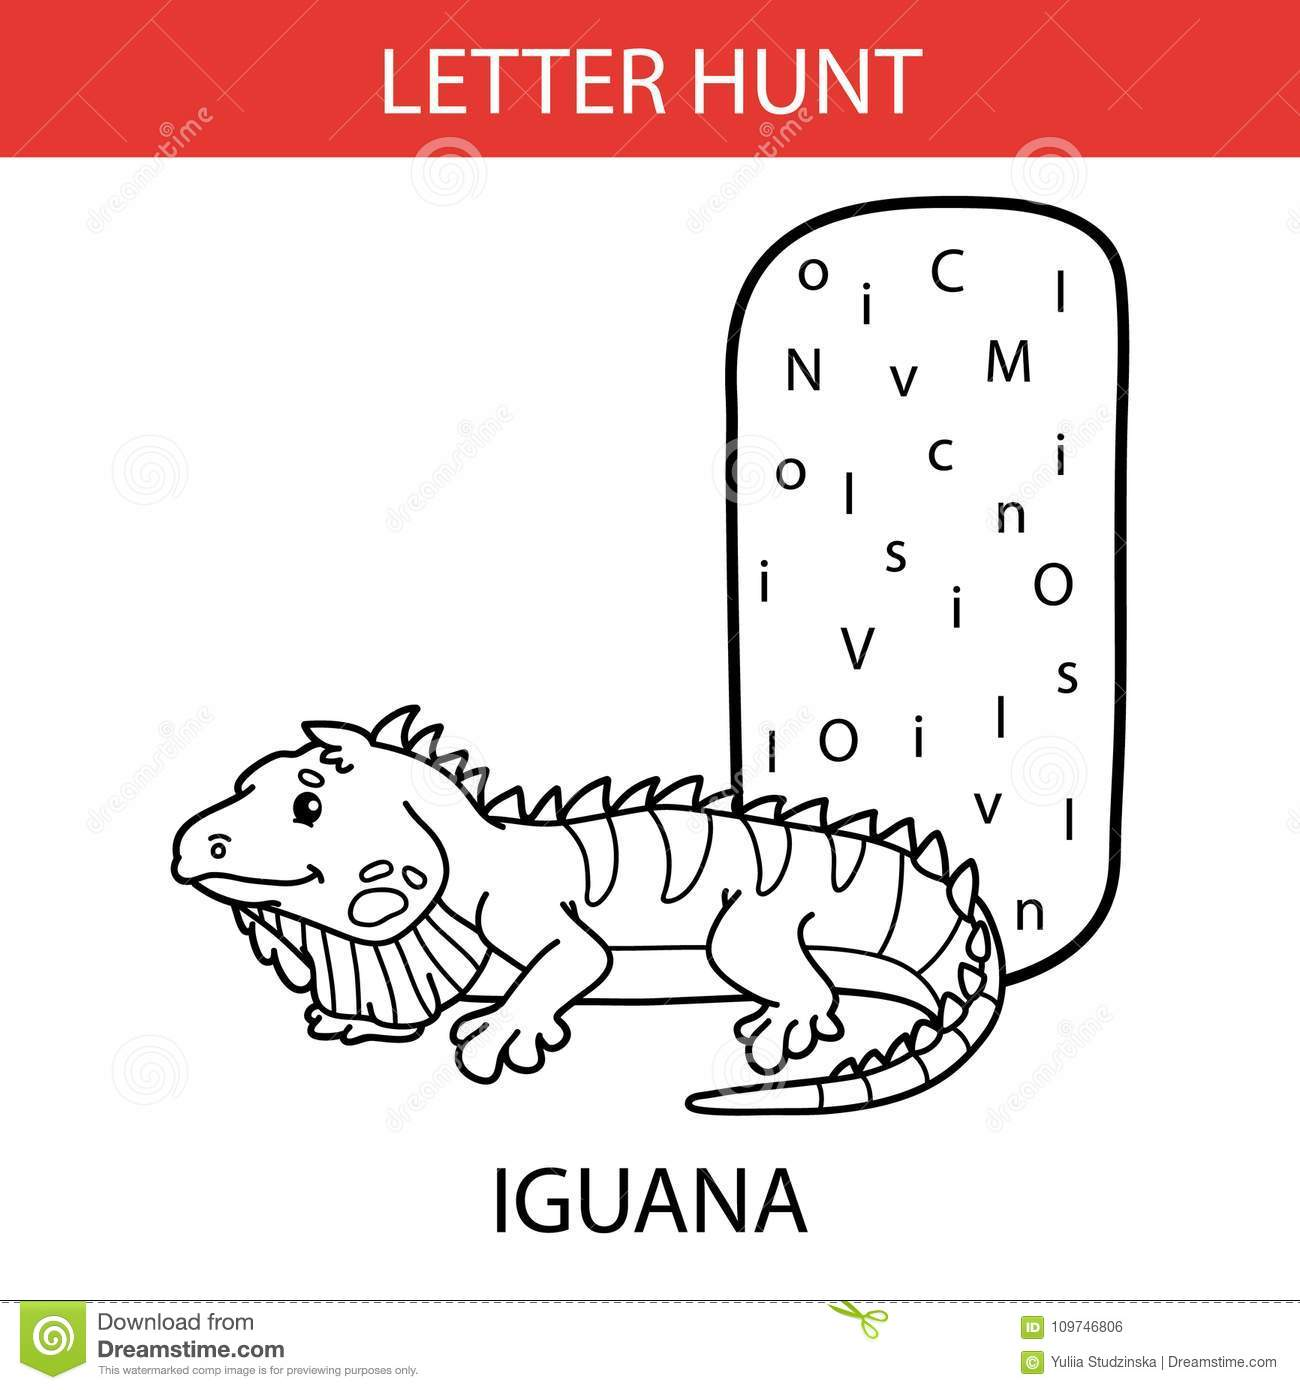 Animal Letter Hunt Iguana Stock Vector Illustration Of